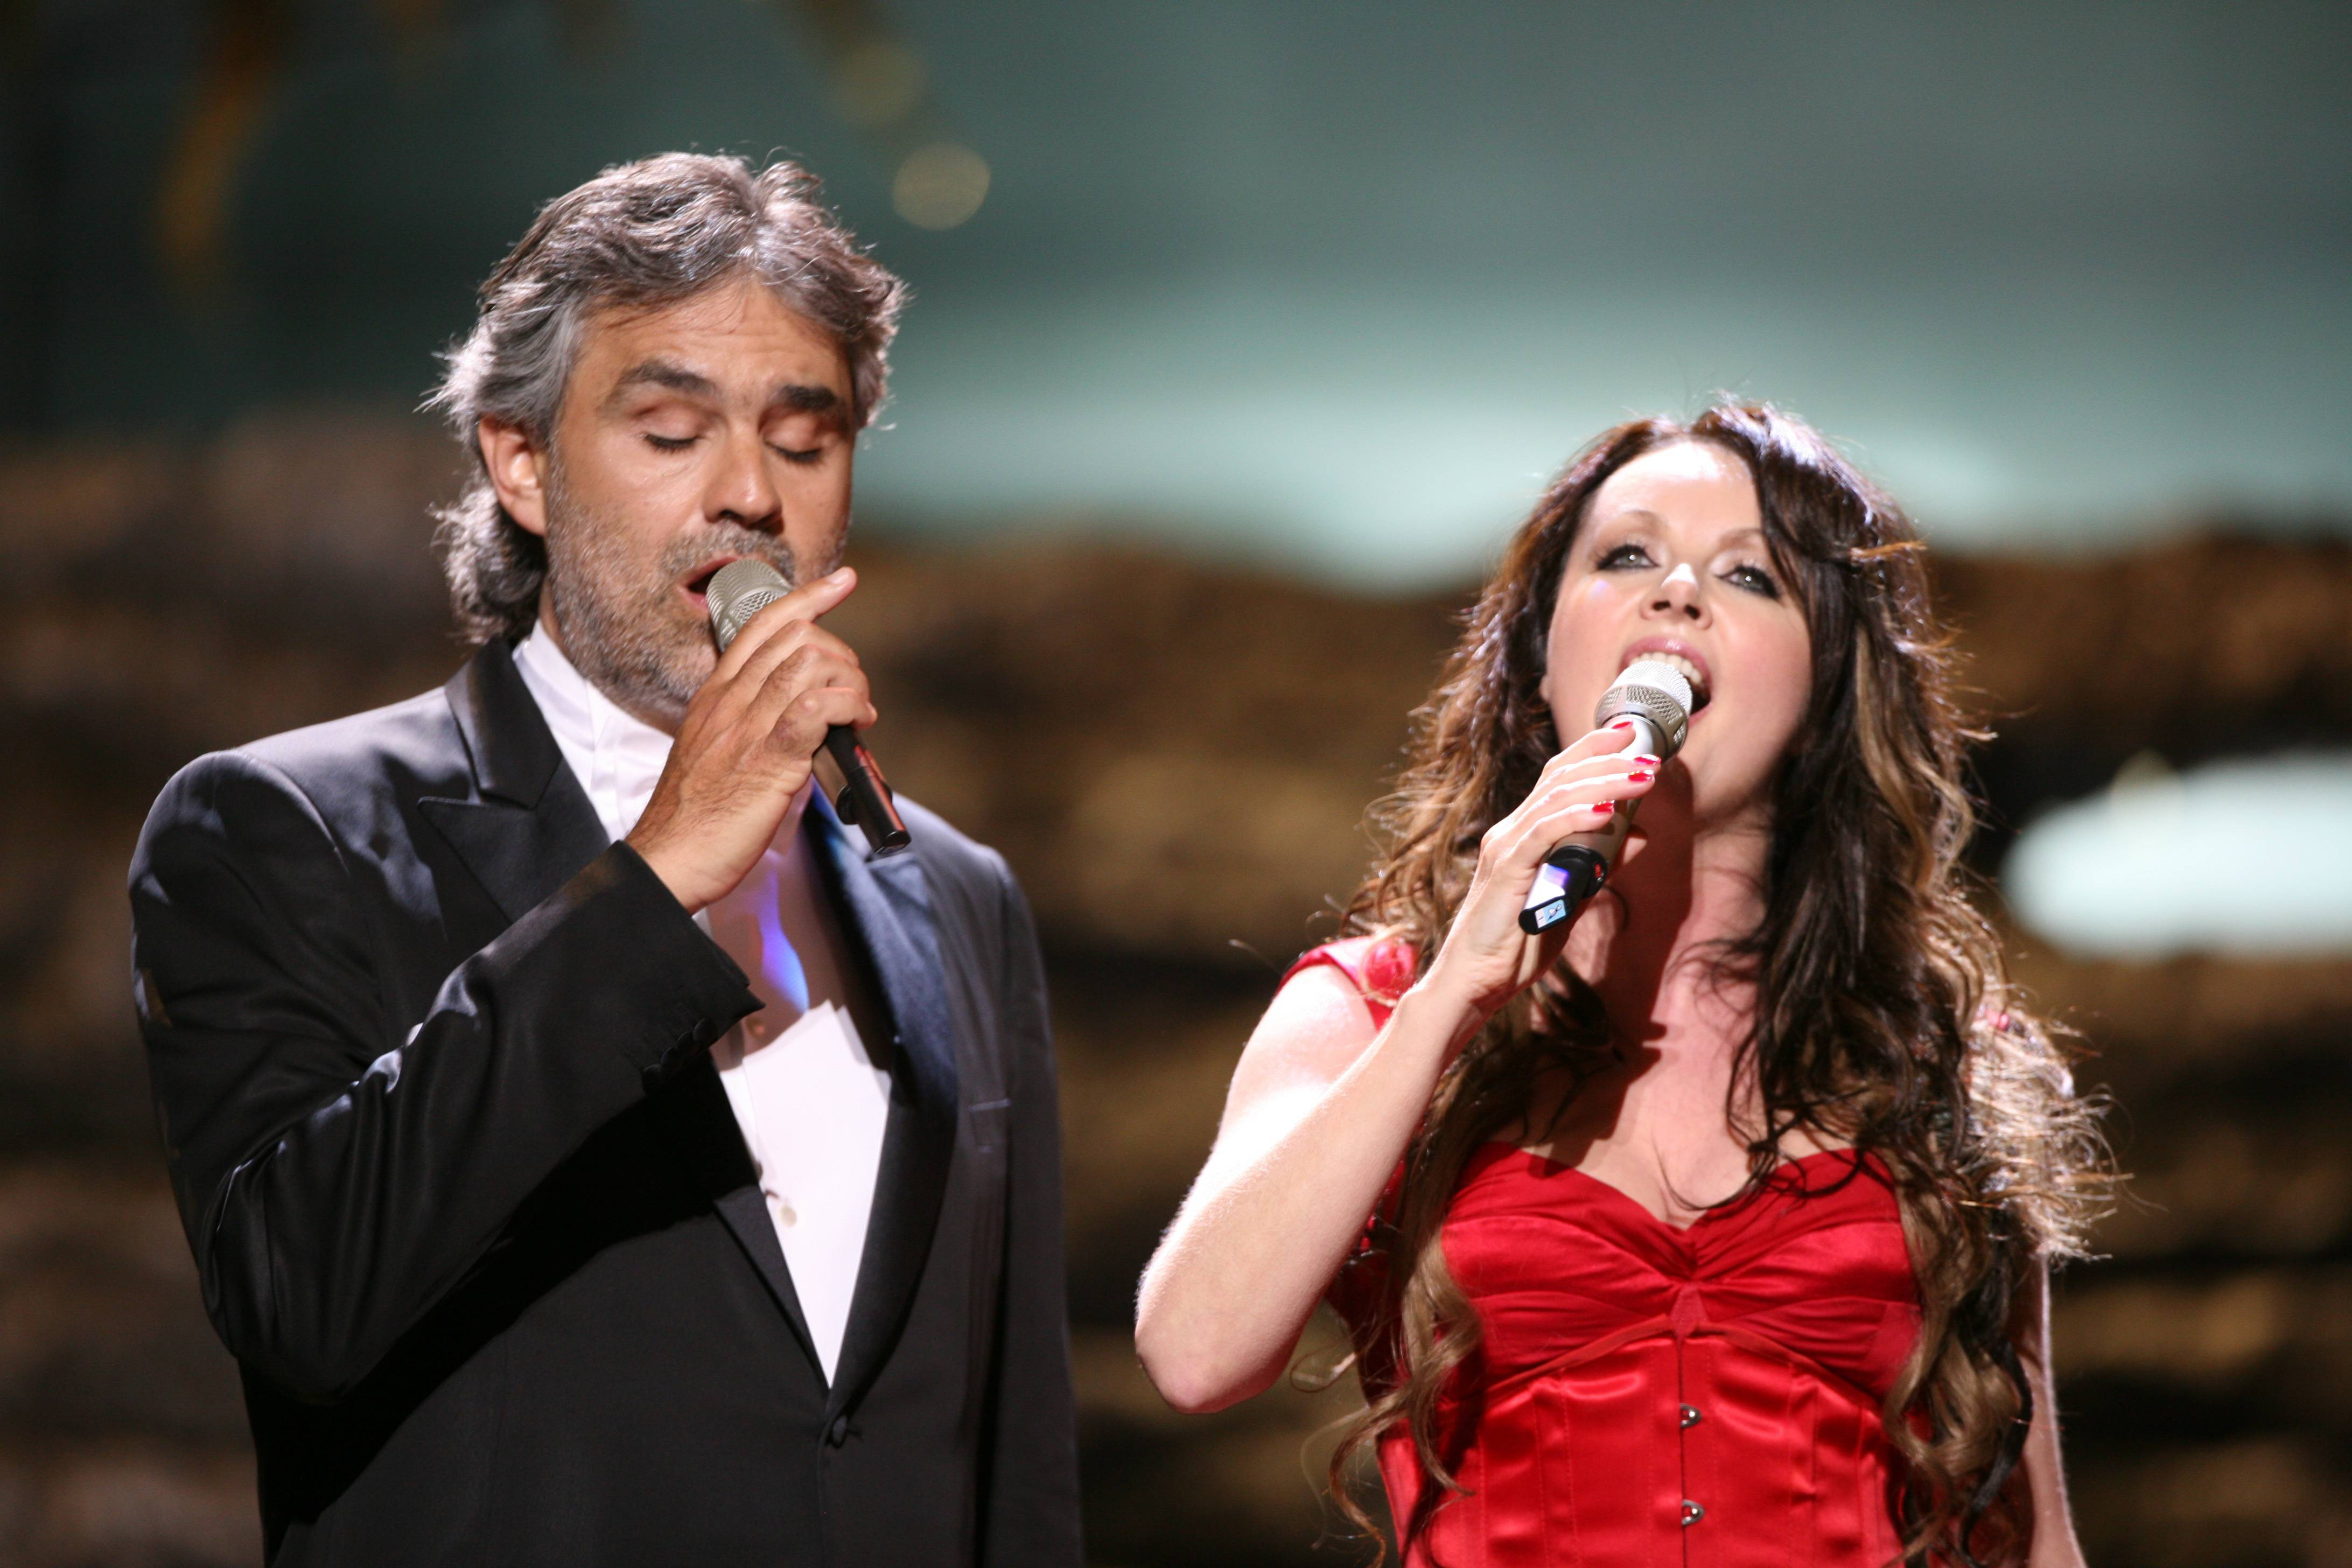 Andrea Bocelli and Sarah Brightman duet together